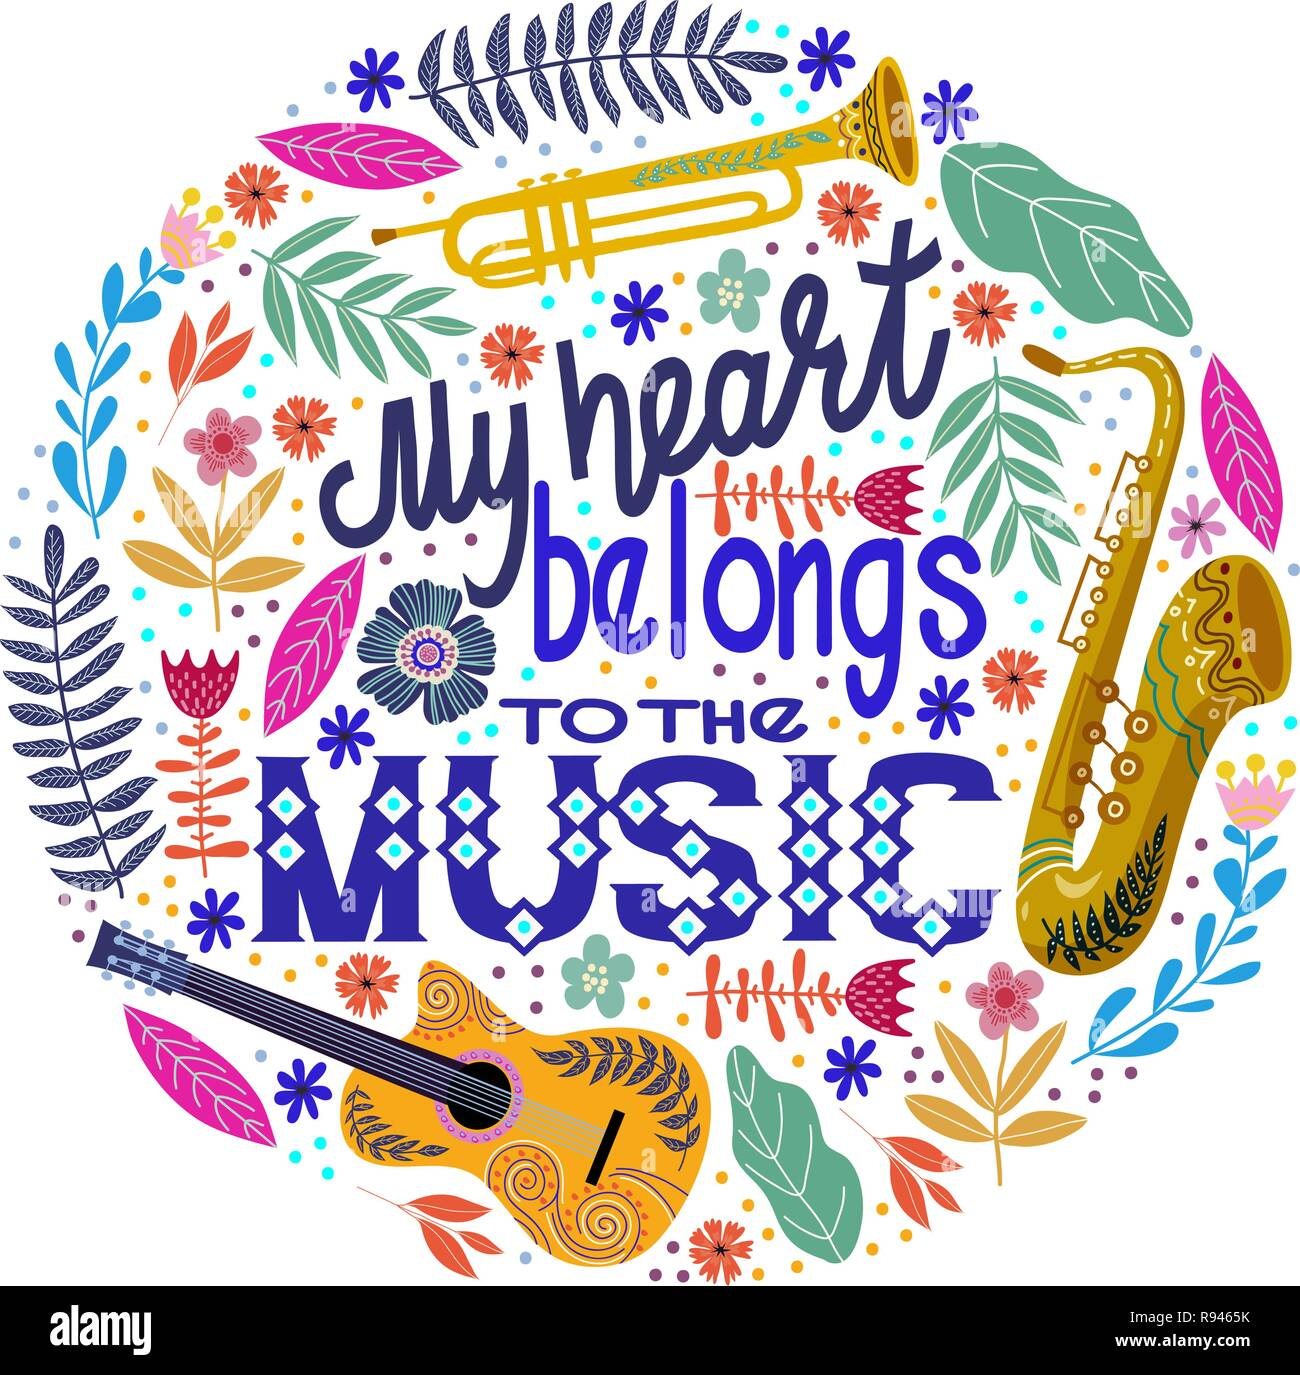 Colorful Round concept on a white background, lettering with musical instruments and flowers. Hand drawing flat doodle vector illustration. - Stock Vector